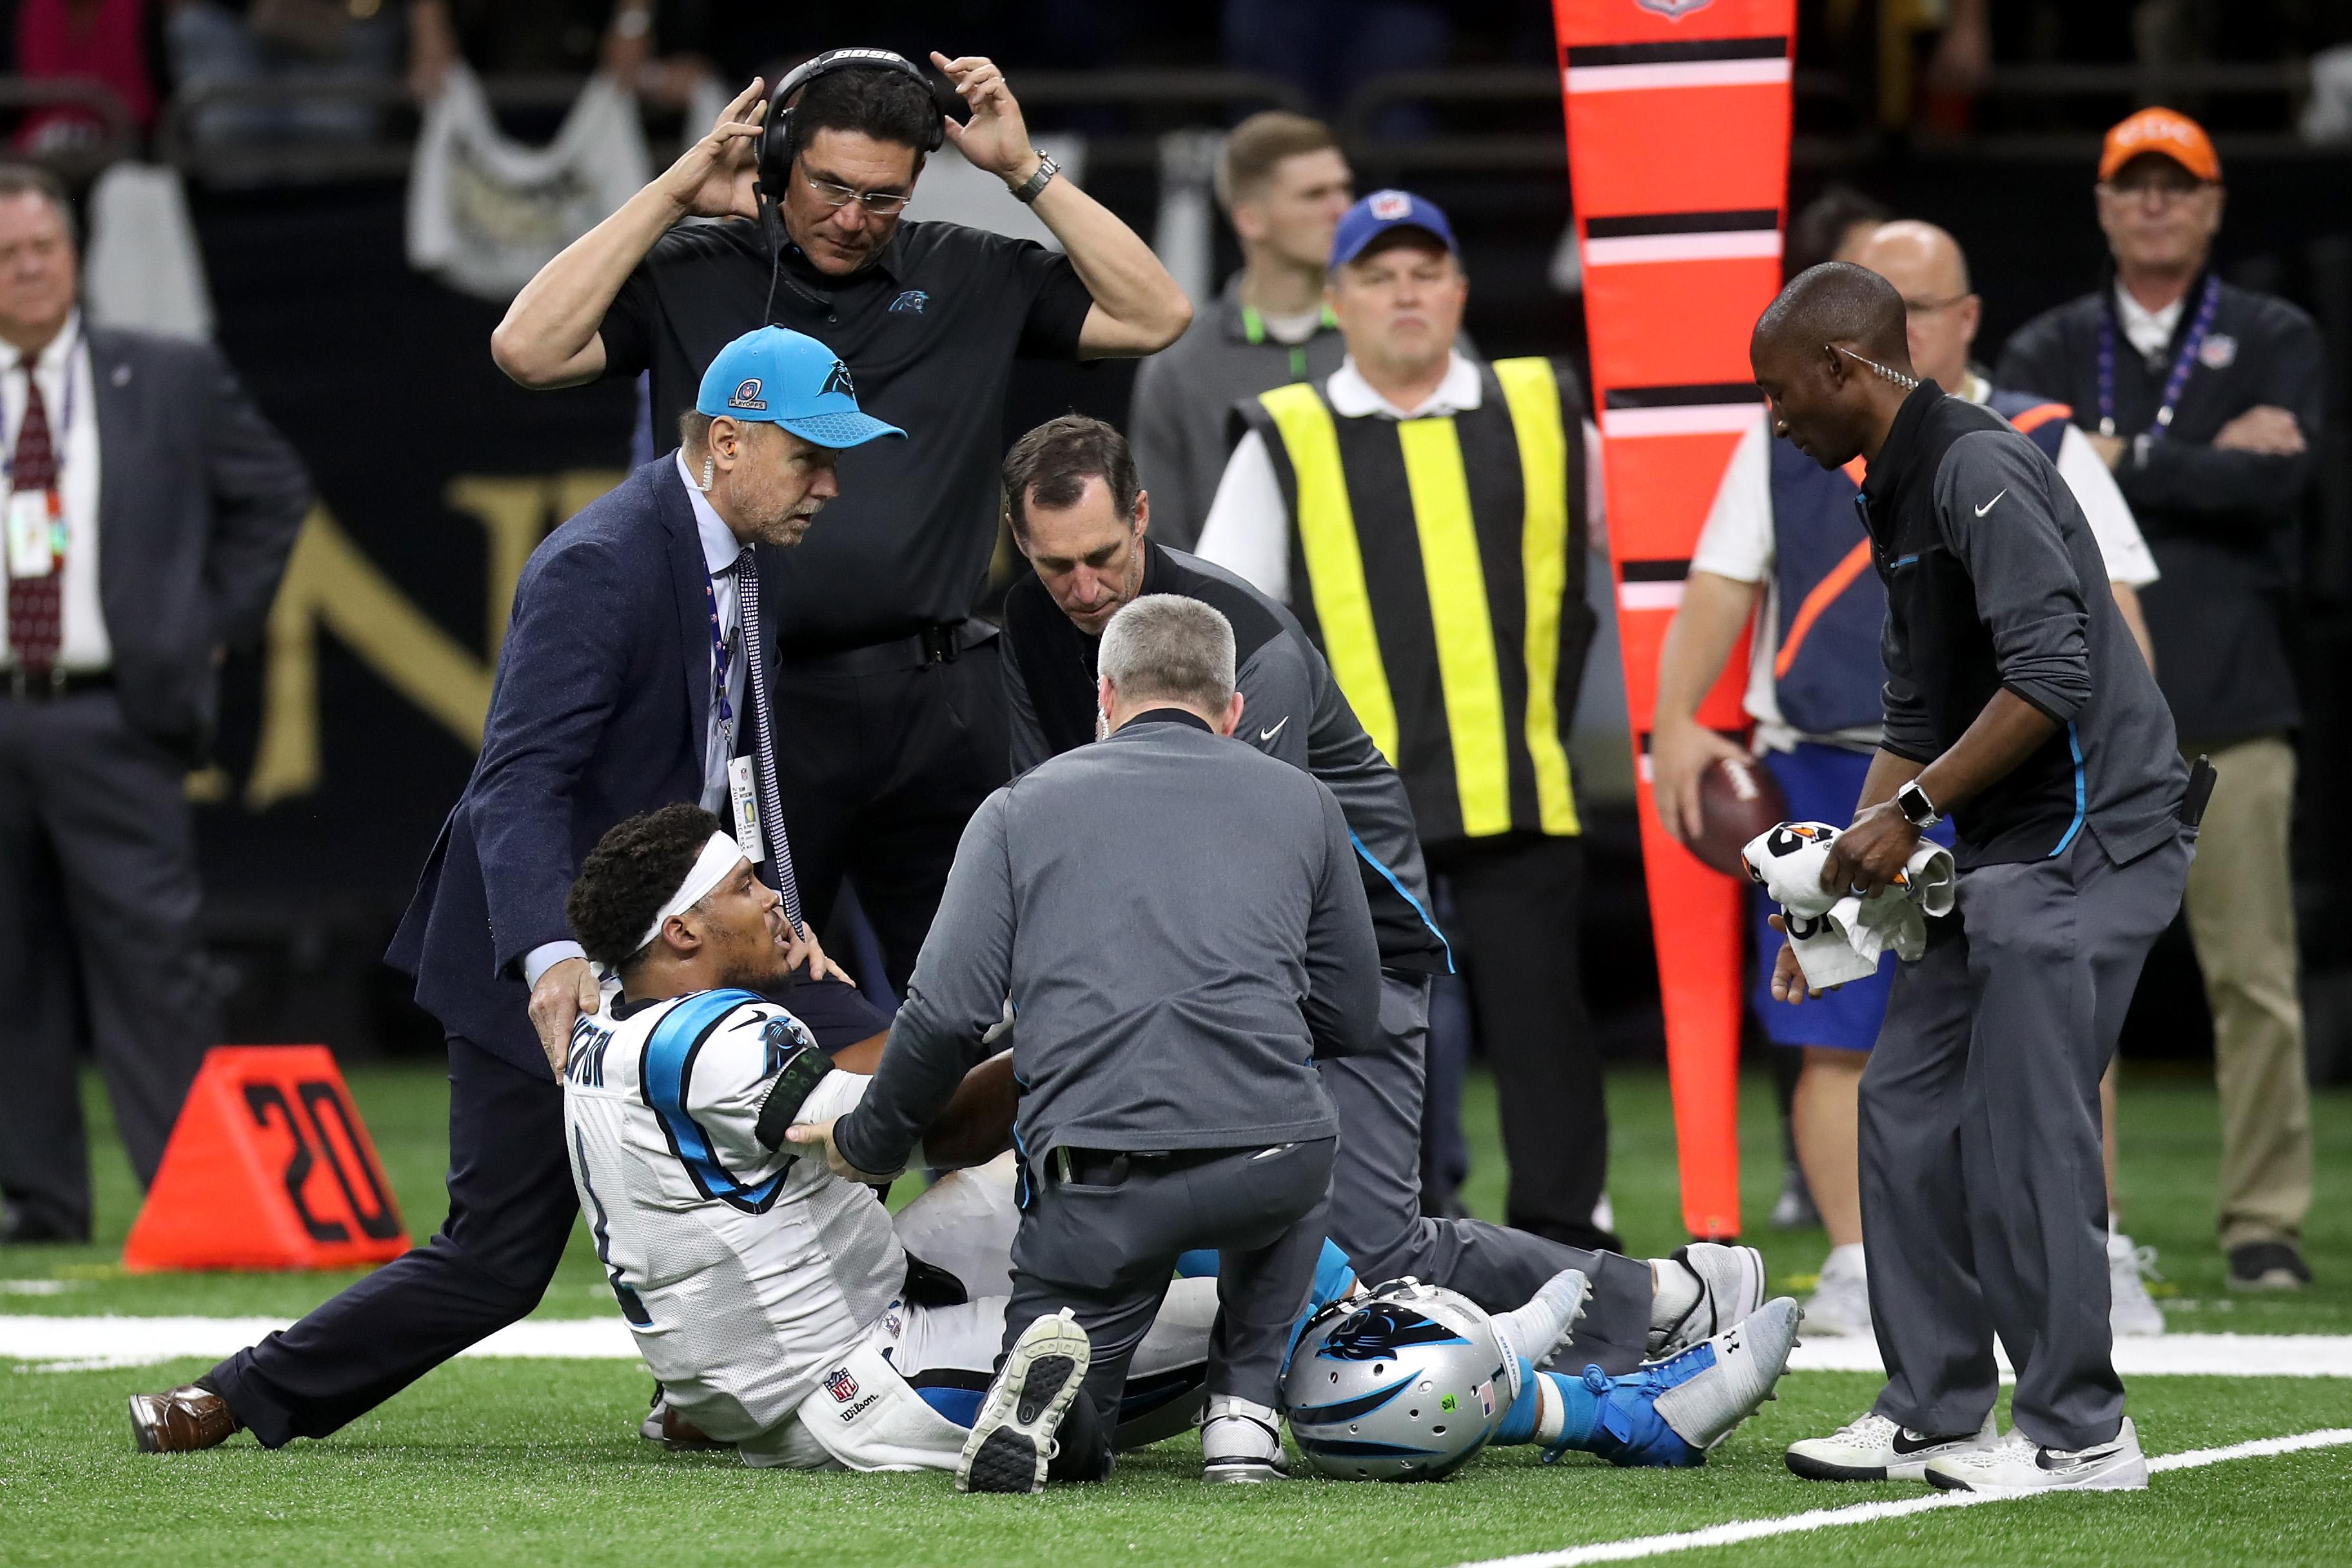 NEW ORLEANS, LA - JANUARY 07:  Cam Newton #1 of the Carolina Panthers is checked on the sideline after a tackle during the game against the New Orleans Saints at the Mercedes-Benz Superdome on January 7, 2018 in New Orleans, Louisiana.  (Photo by Chris Graythen/Getty Images)